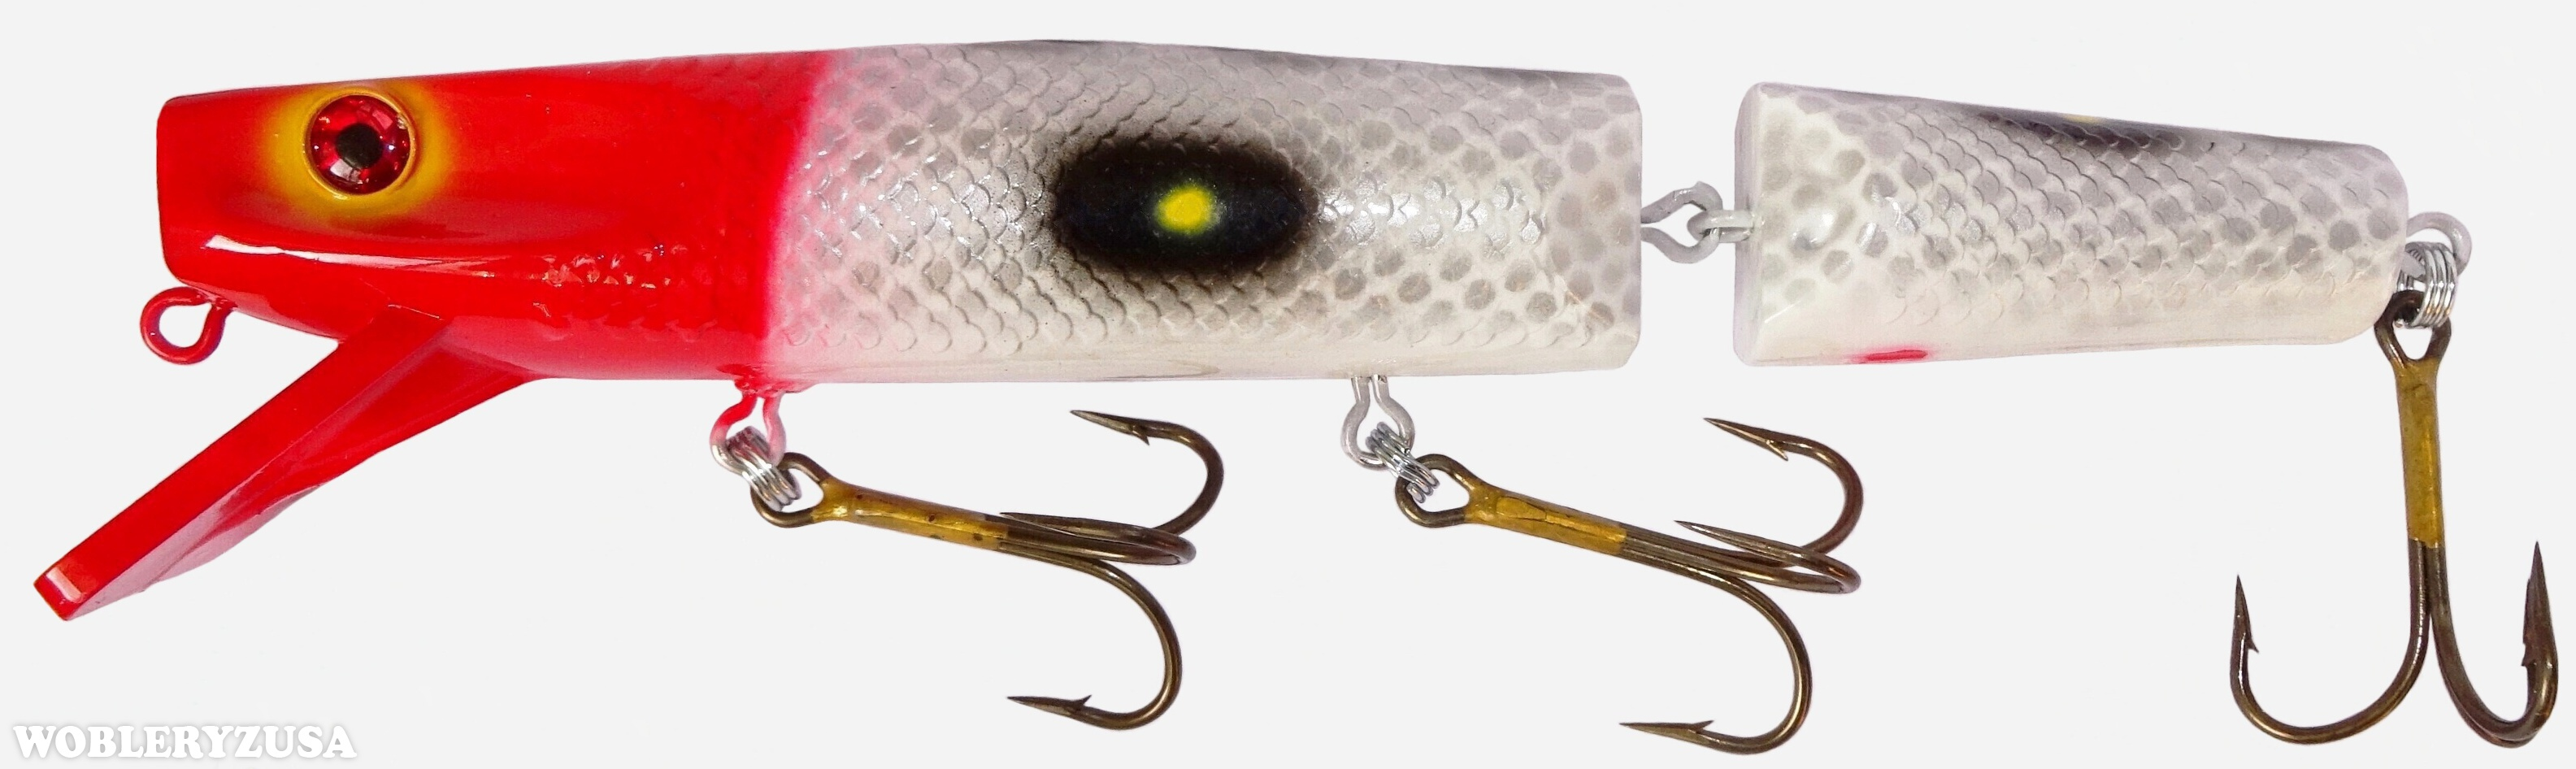 Wobler Muskie STALKER 25 cm - Red & White Scale